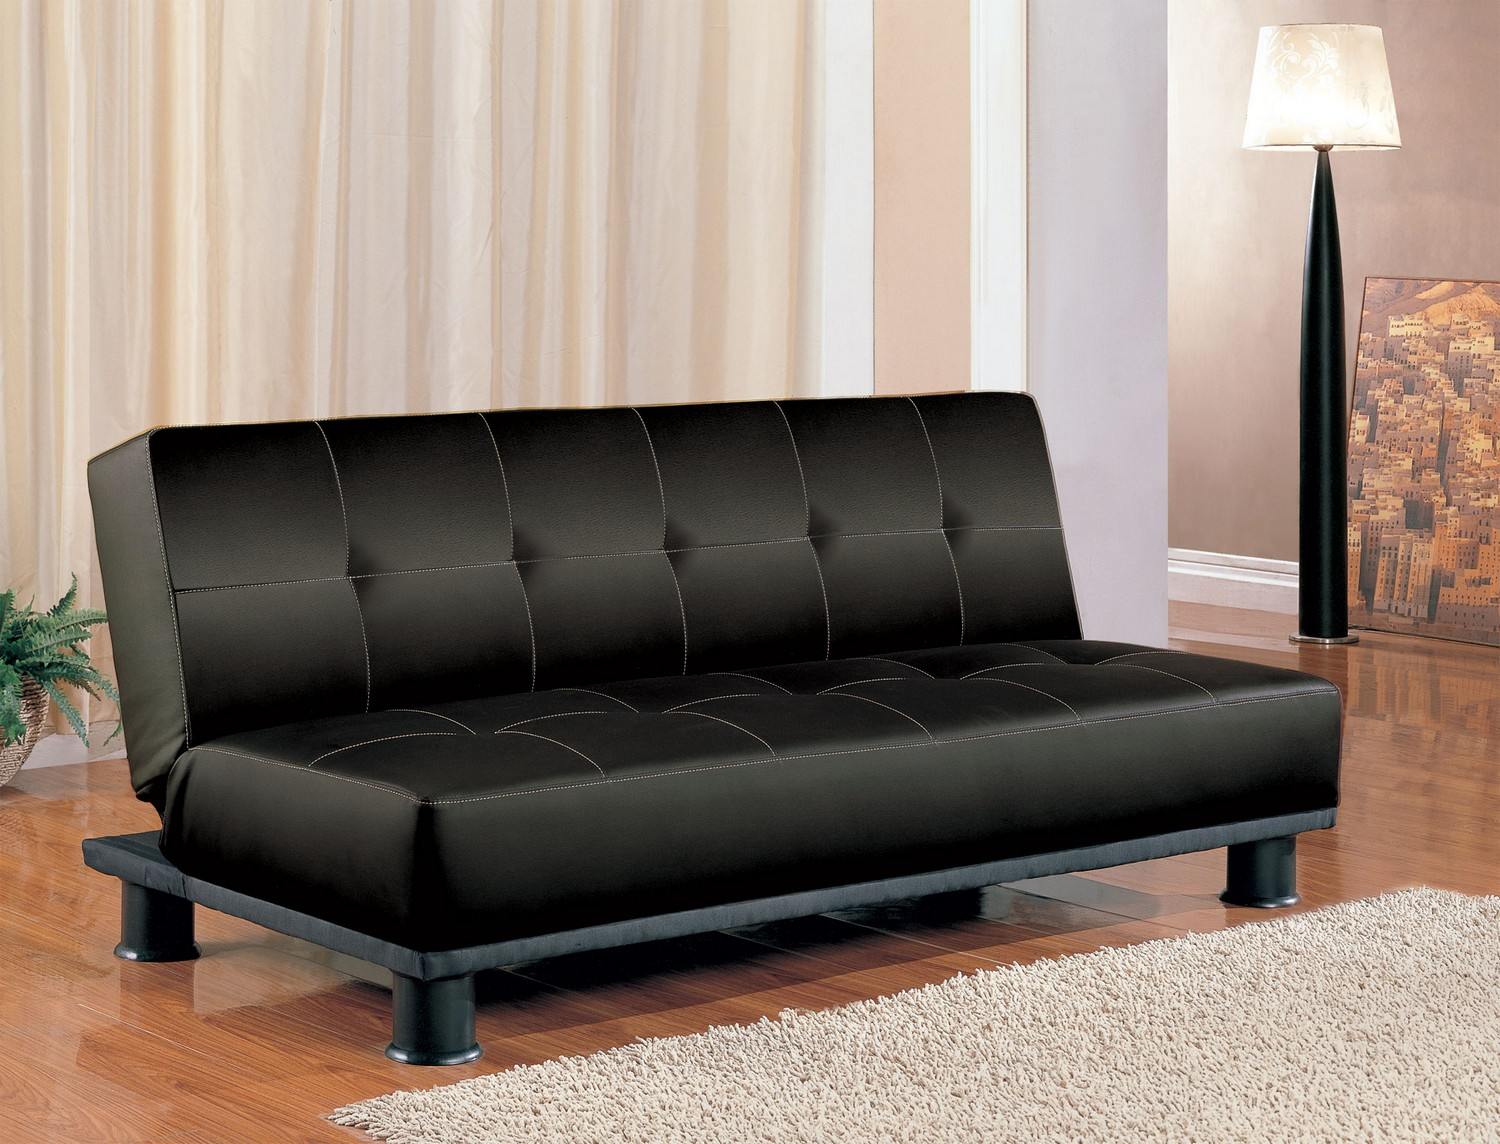 Coaster 300163 Sofa Bed - Black